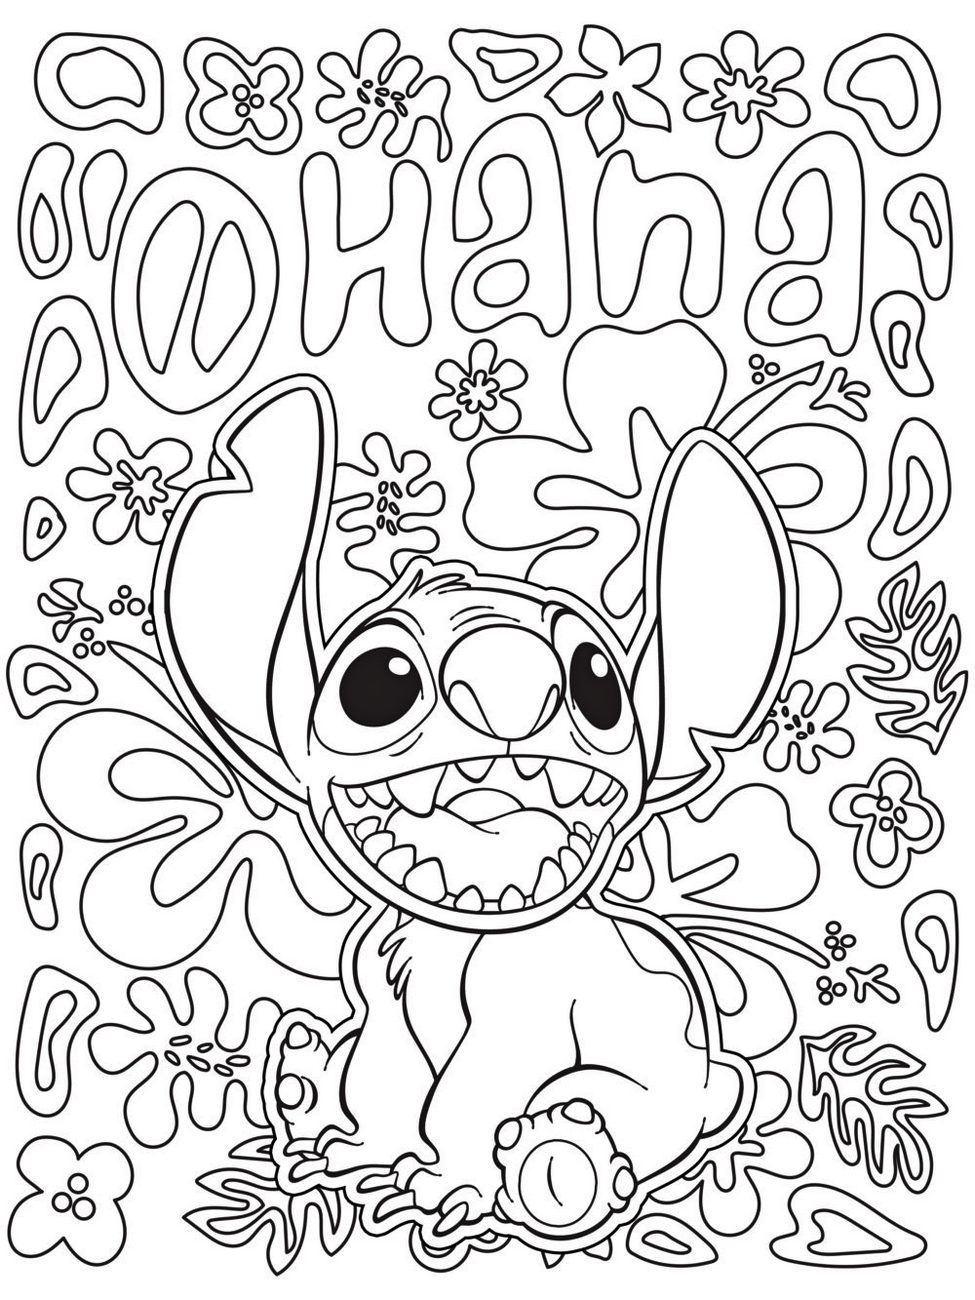 Stitch Disney Coloring Page To Print